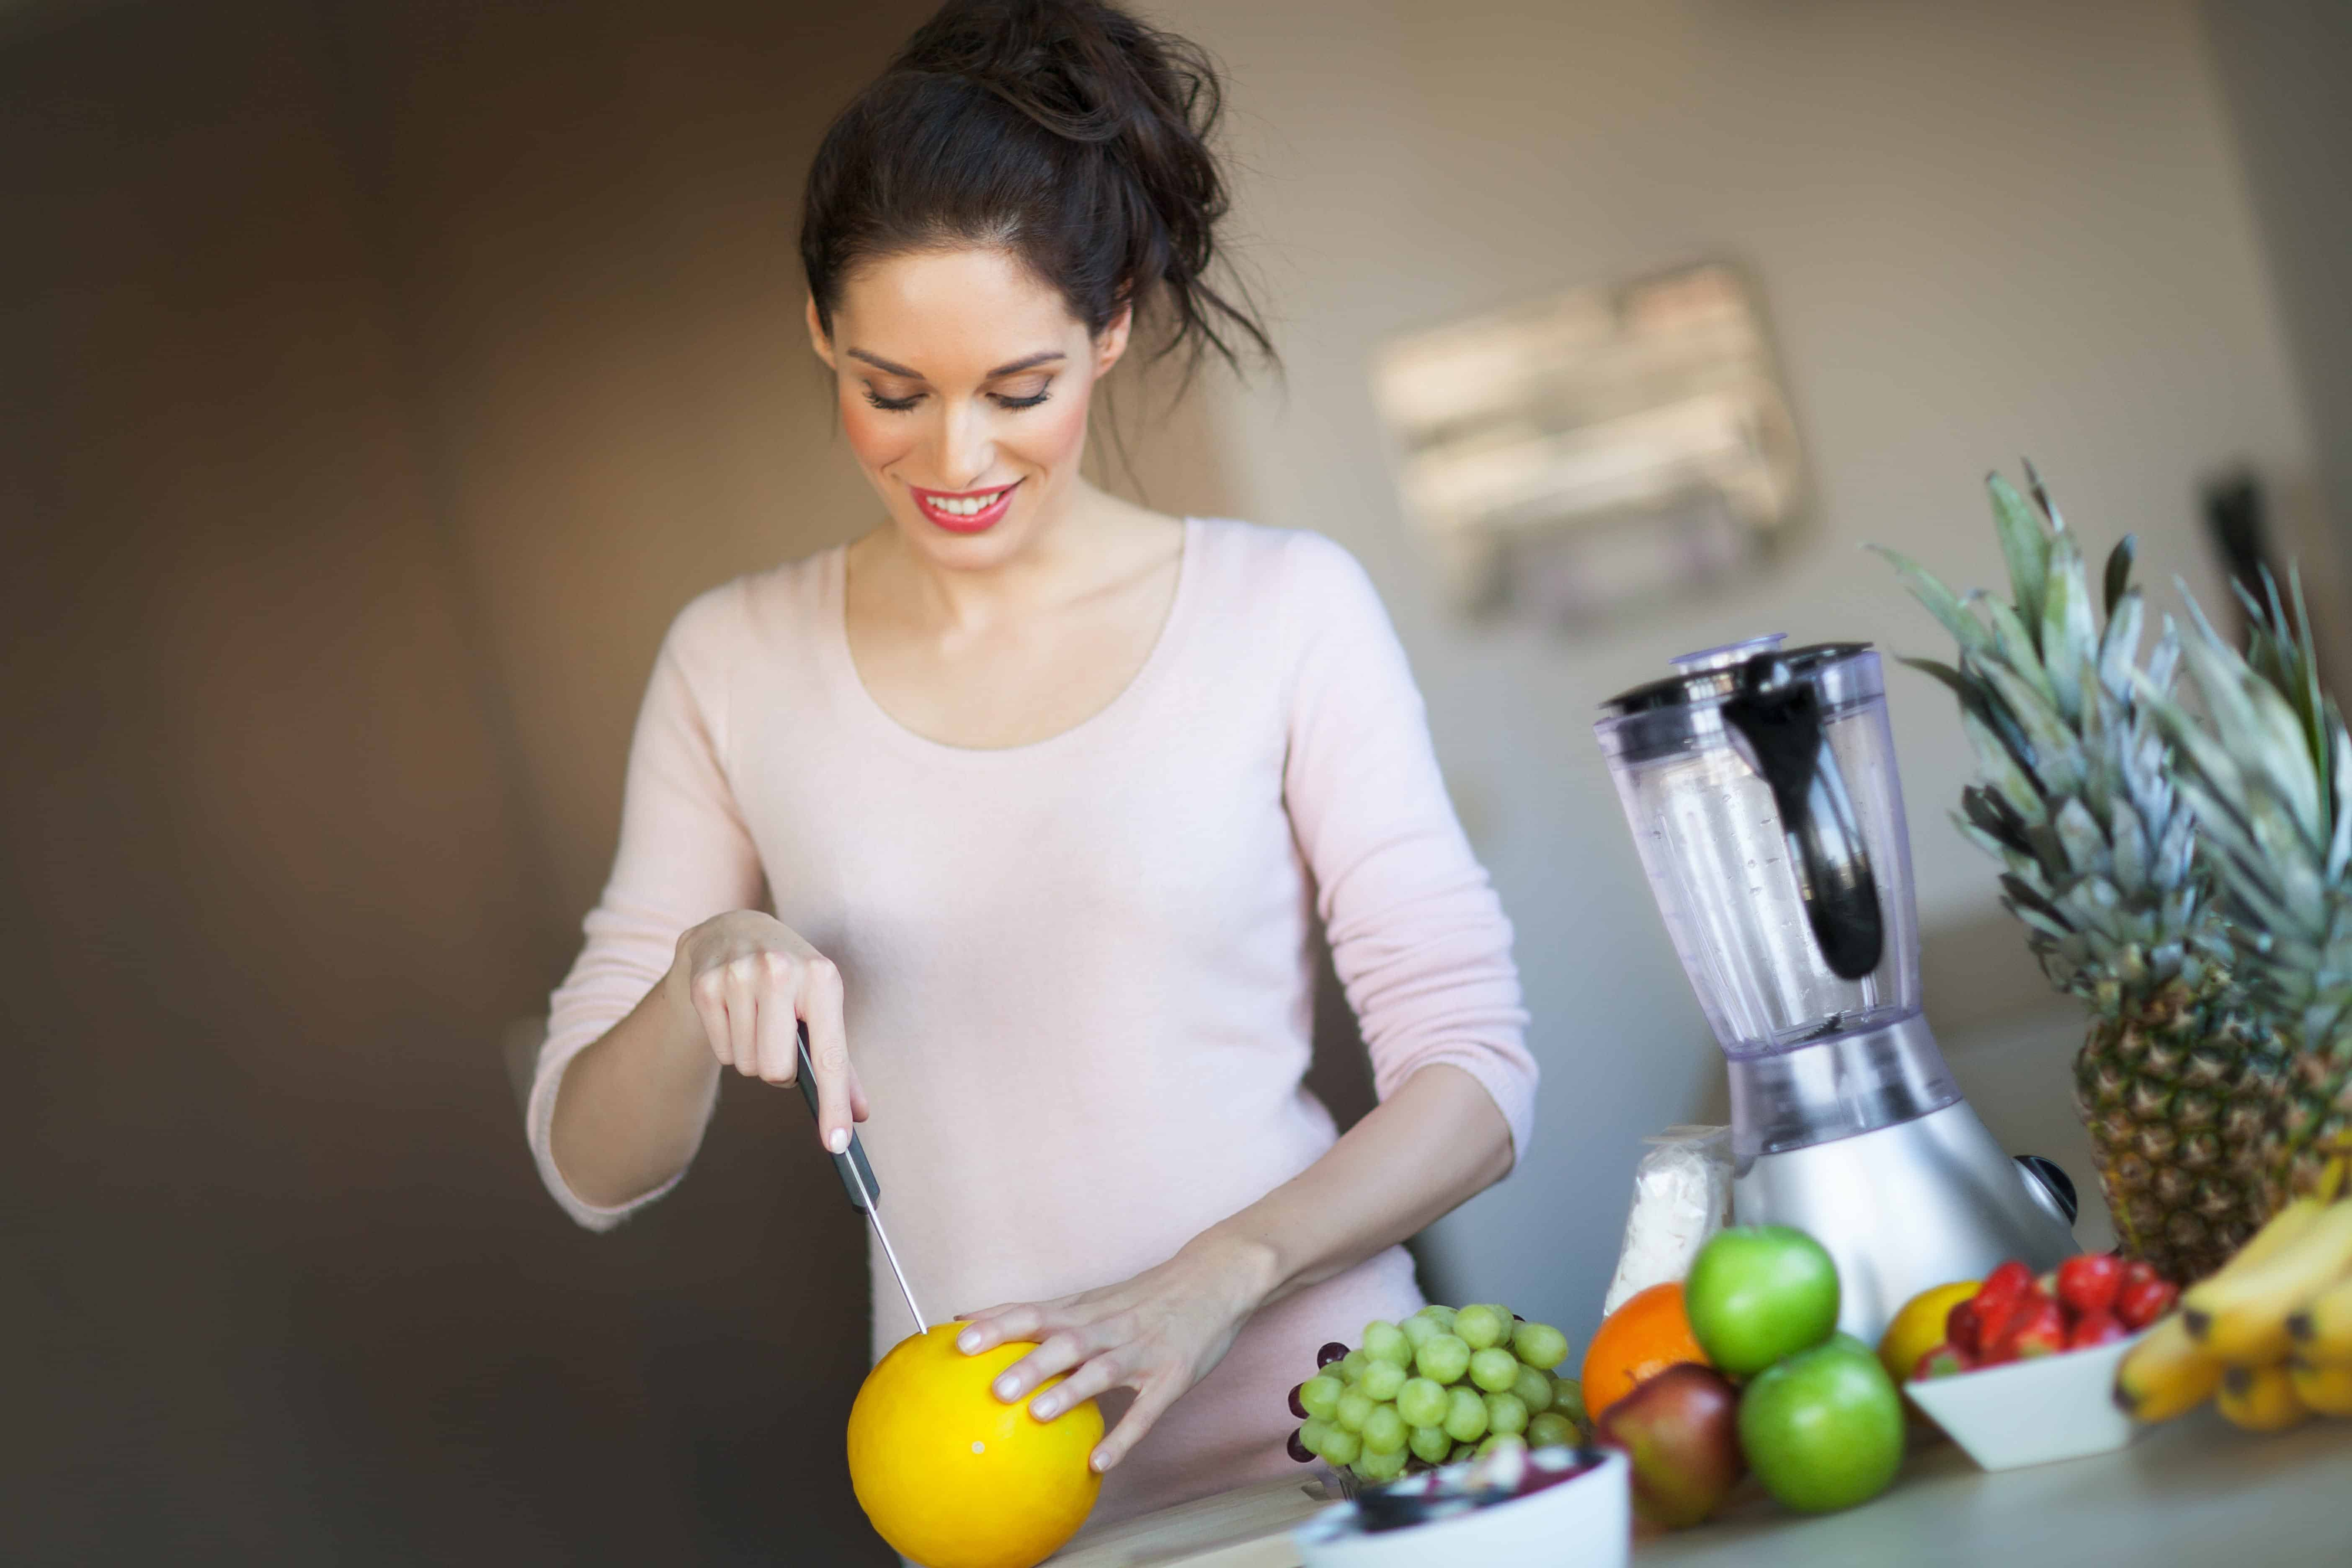 7 Benefits Of Juicing And Frequently Asked Questions